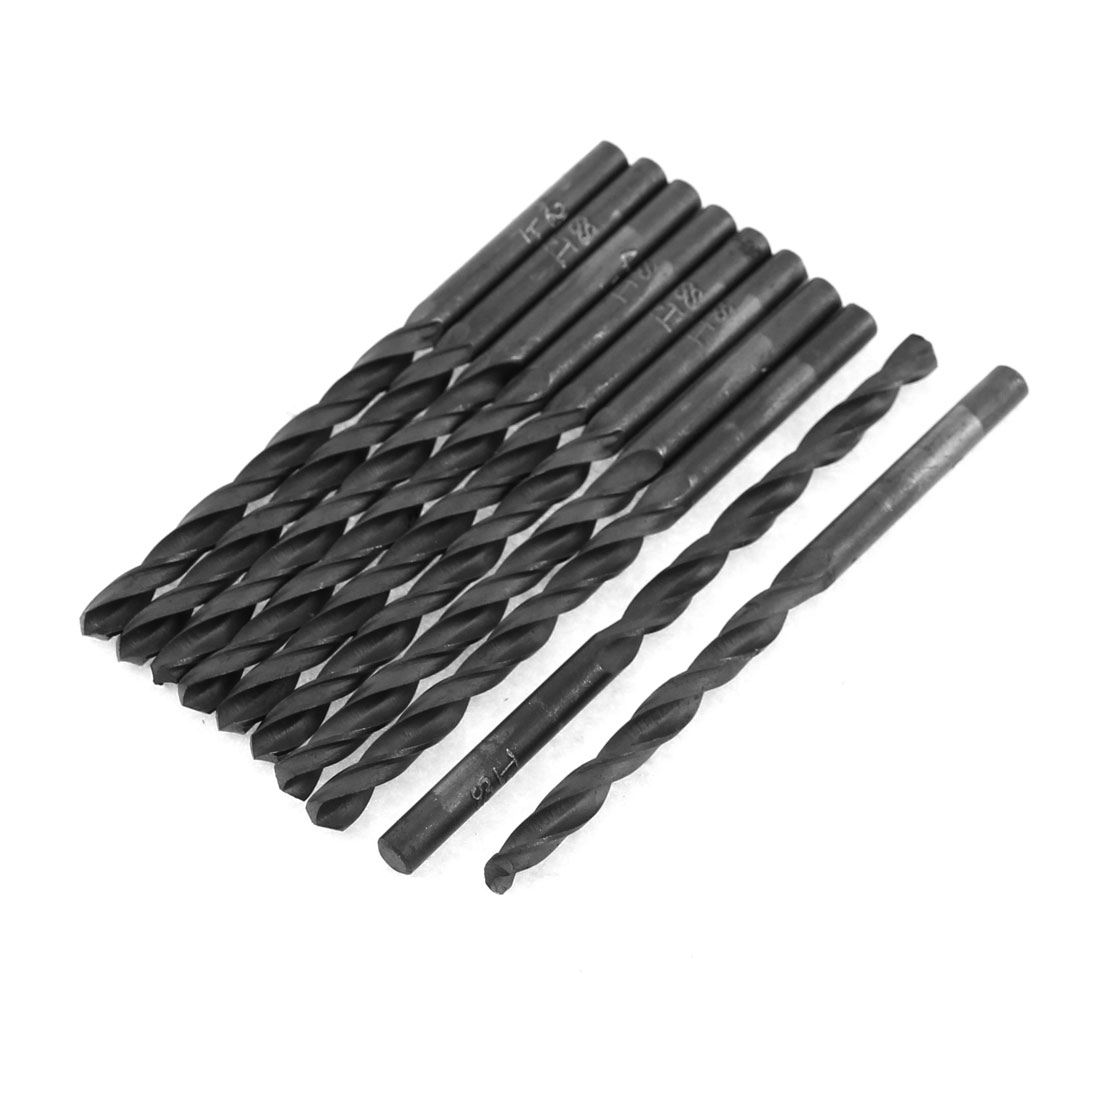 4.2mm Cutting Dia HSS Straight Round Shank Twist Drill Bit Black 10pcs